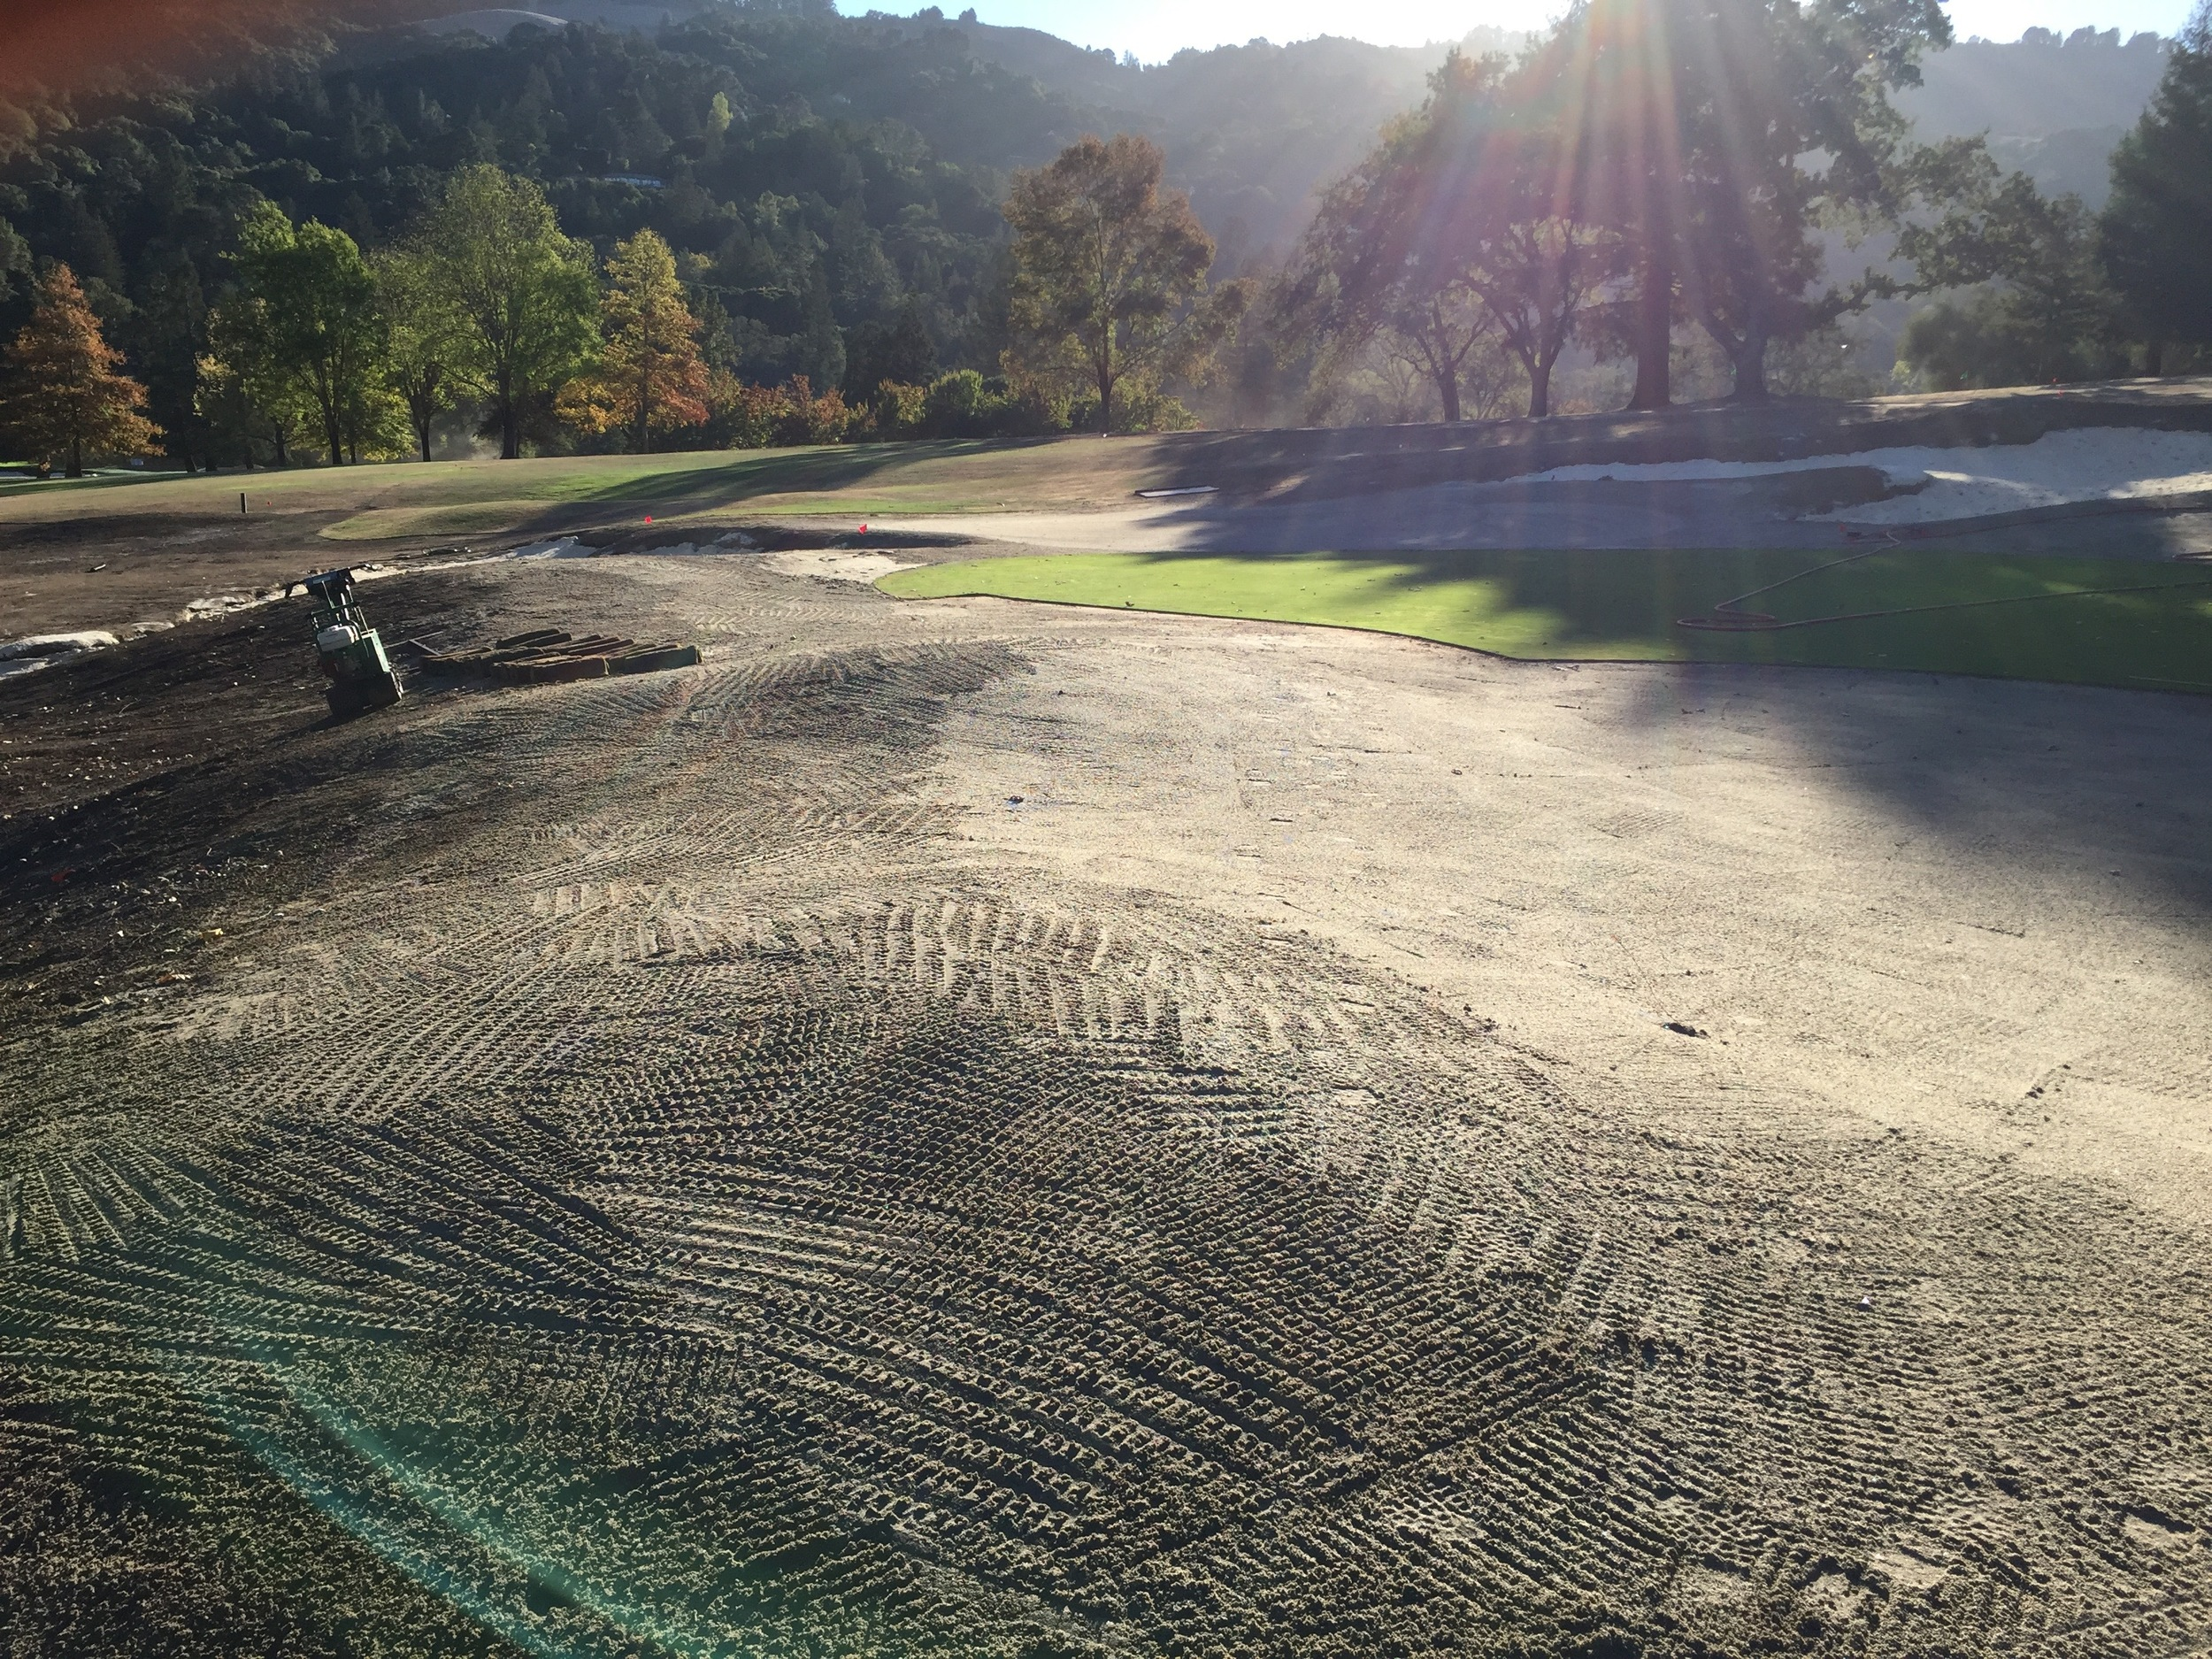 hochstein-design-orinda-cc-hole-2-finish-2.jpg